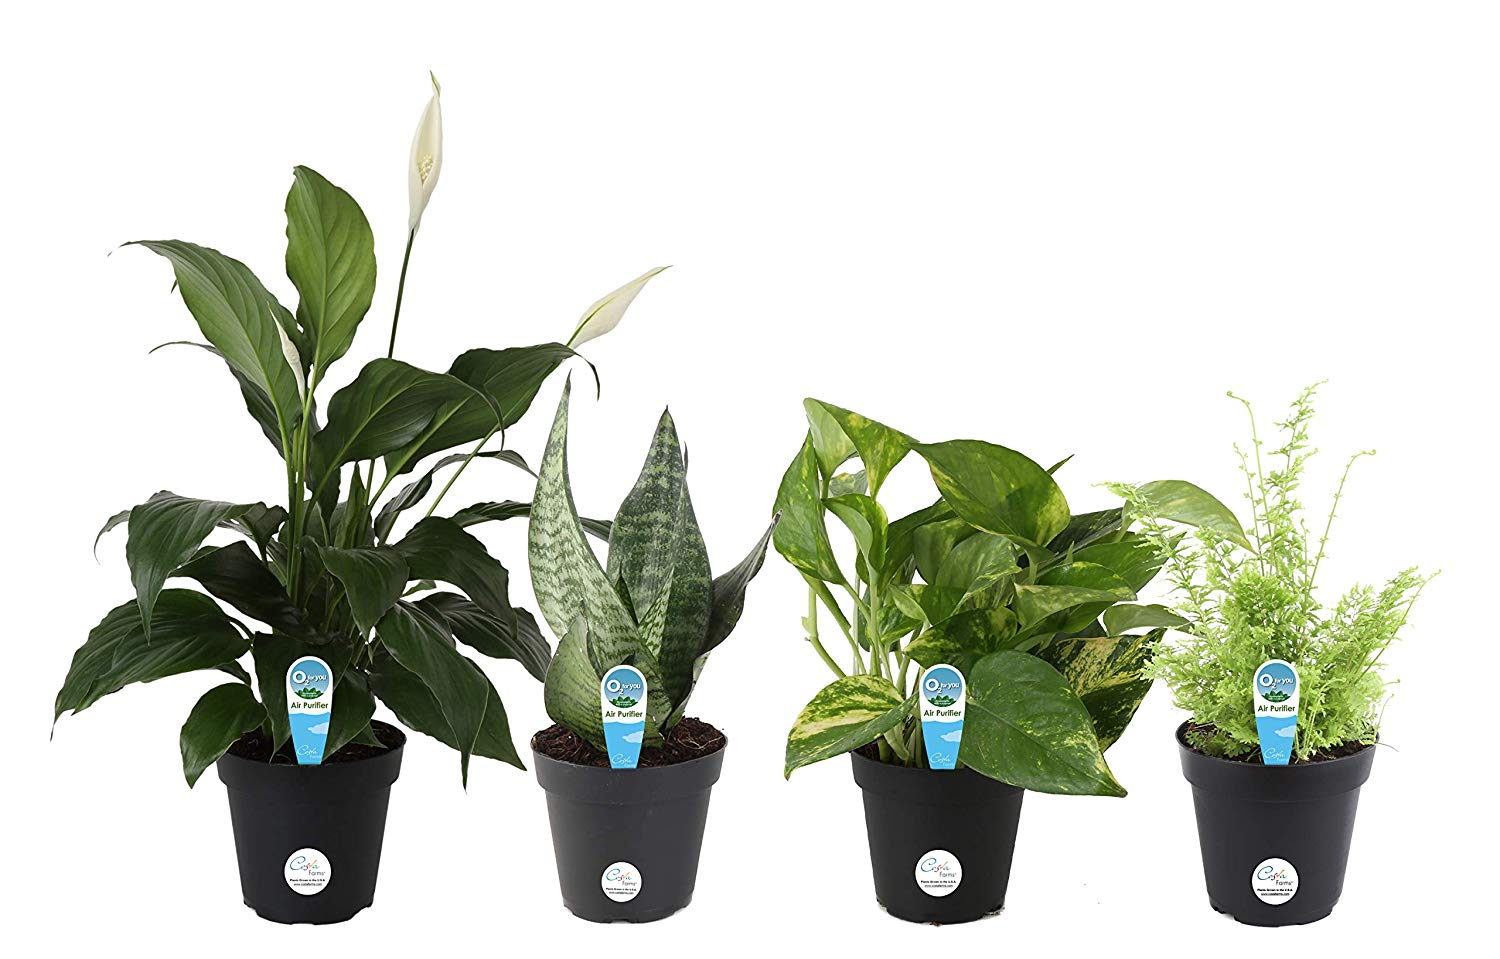 Costa Farms Clean Air 4 pack amazon